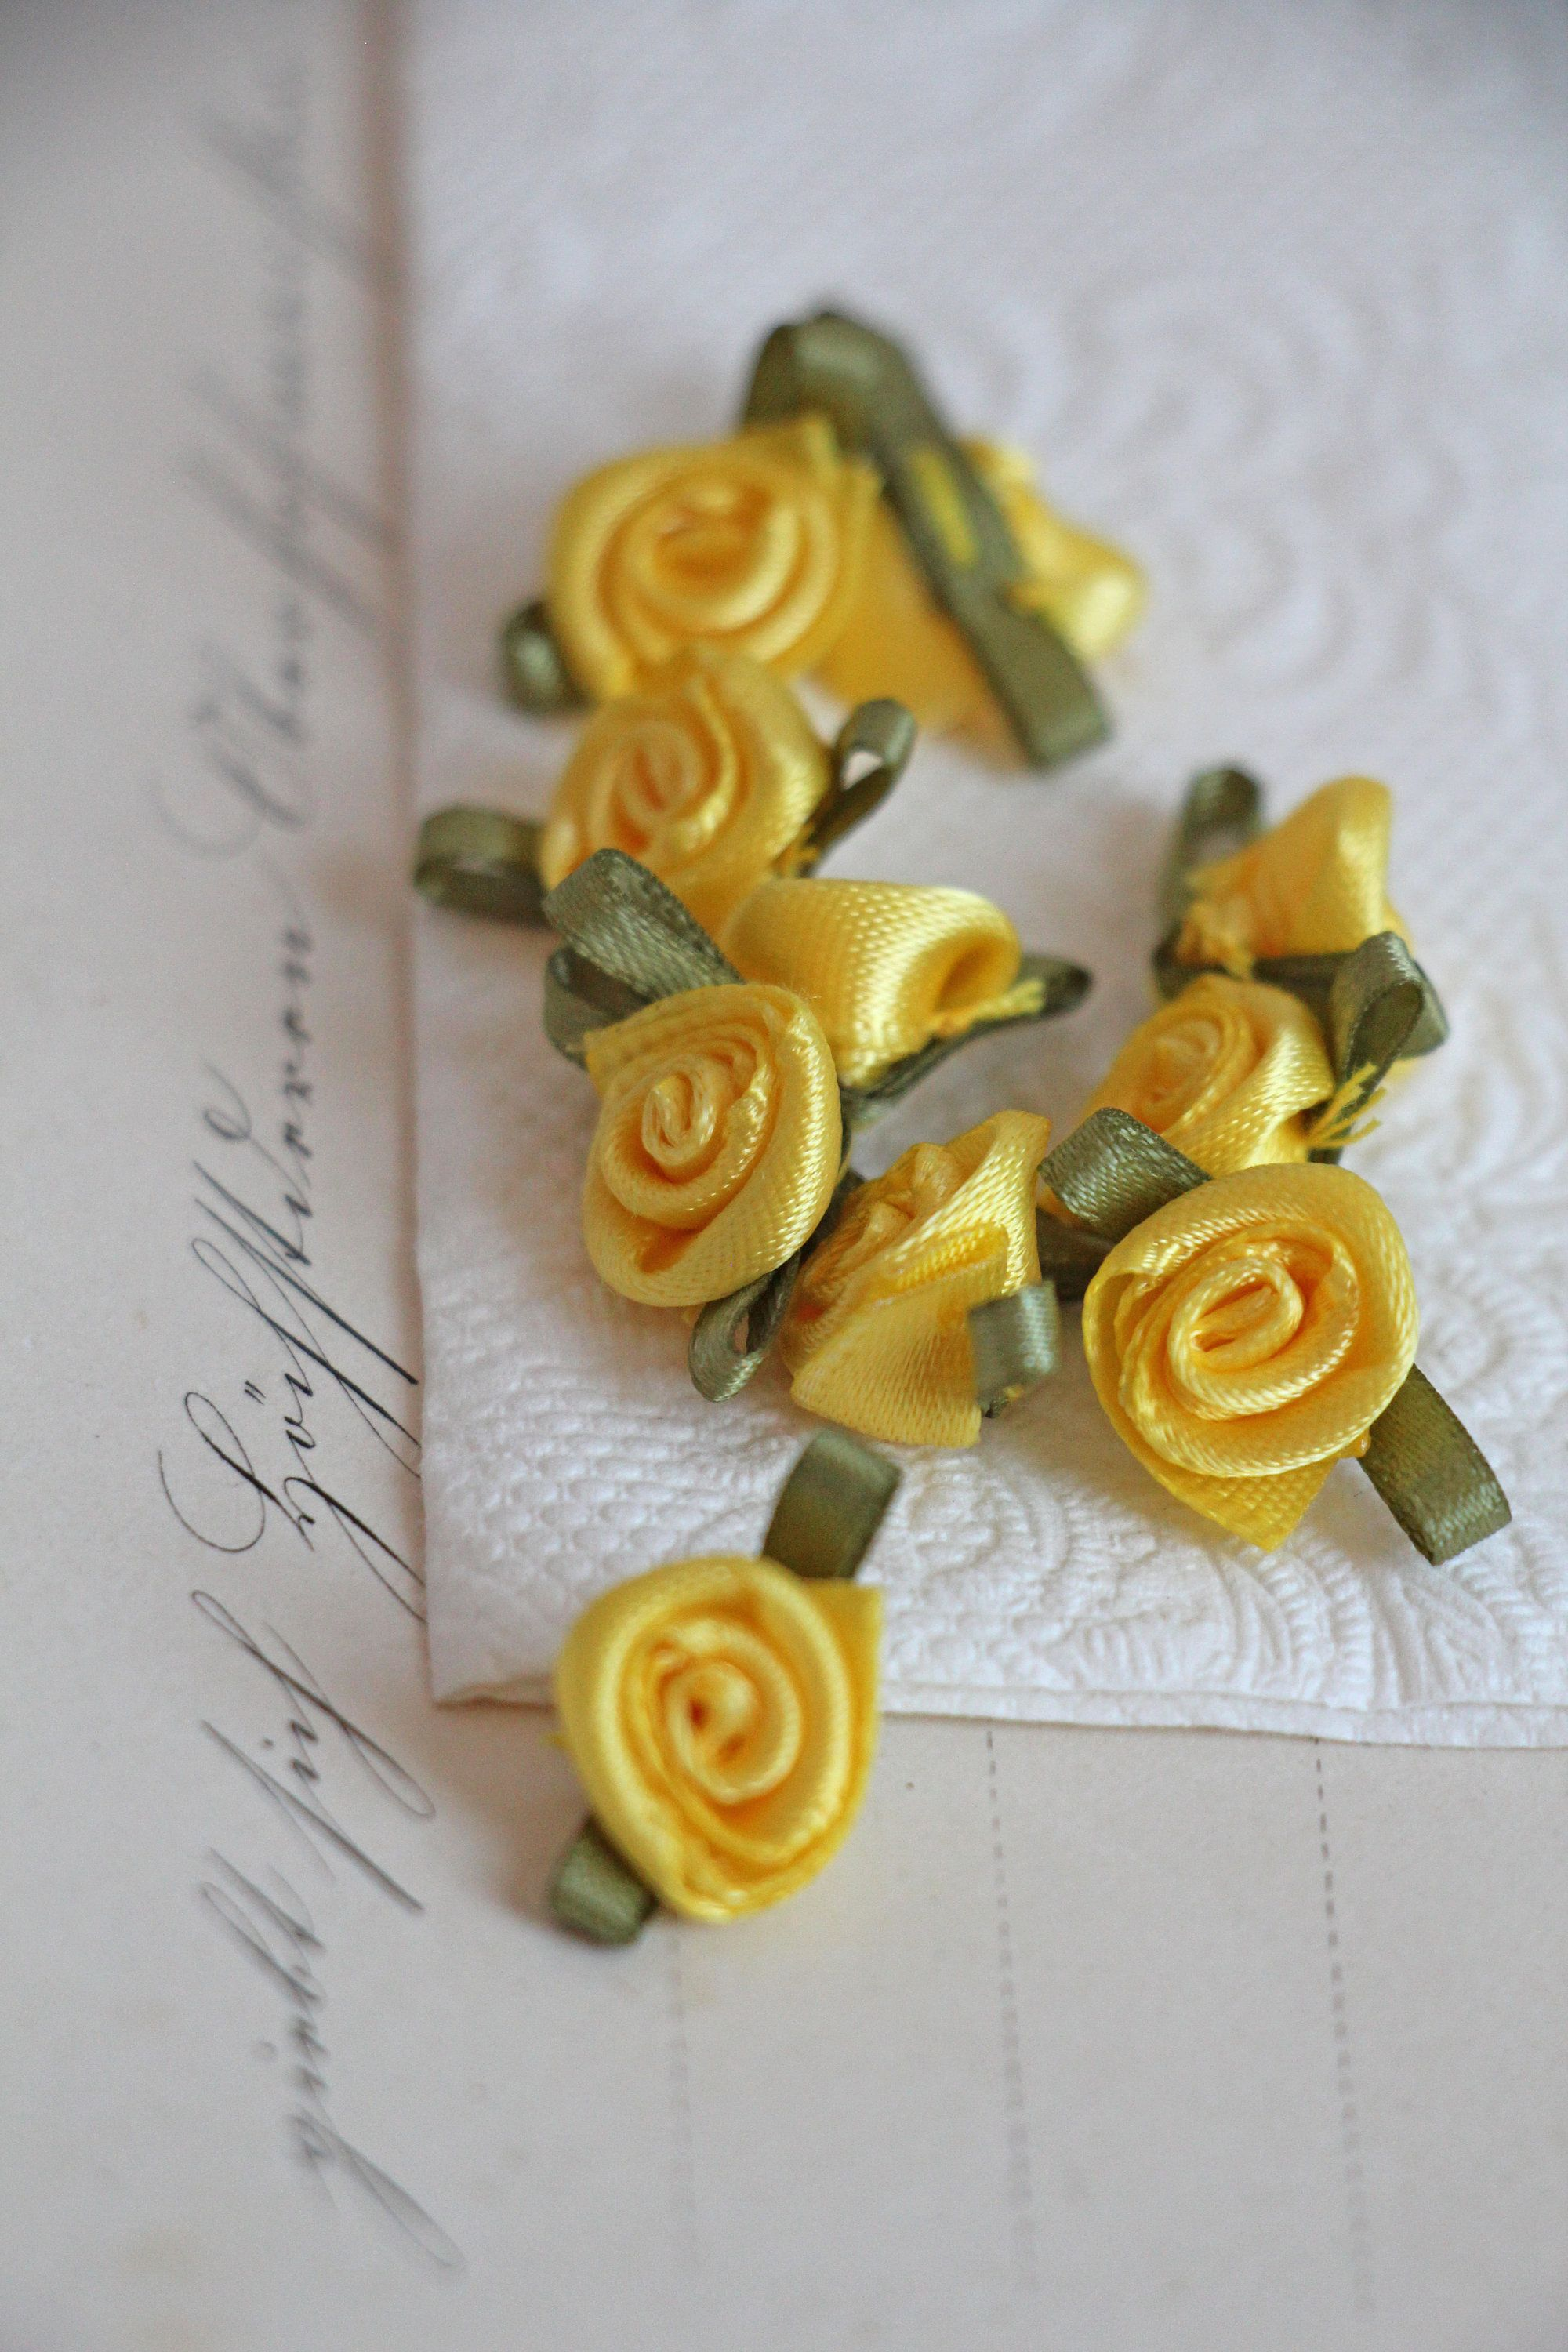 19eur St 10 Small Satin Roses Satin Flores Yellow 1 Cm Rose Rosebud Satin Ribbon Roses Flower Rose Applique Decoration Sewing Diy Quilt Blumen Rosen Quilt Rosen